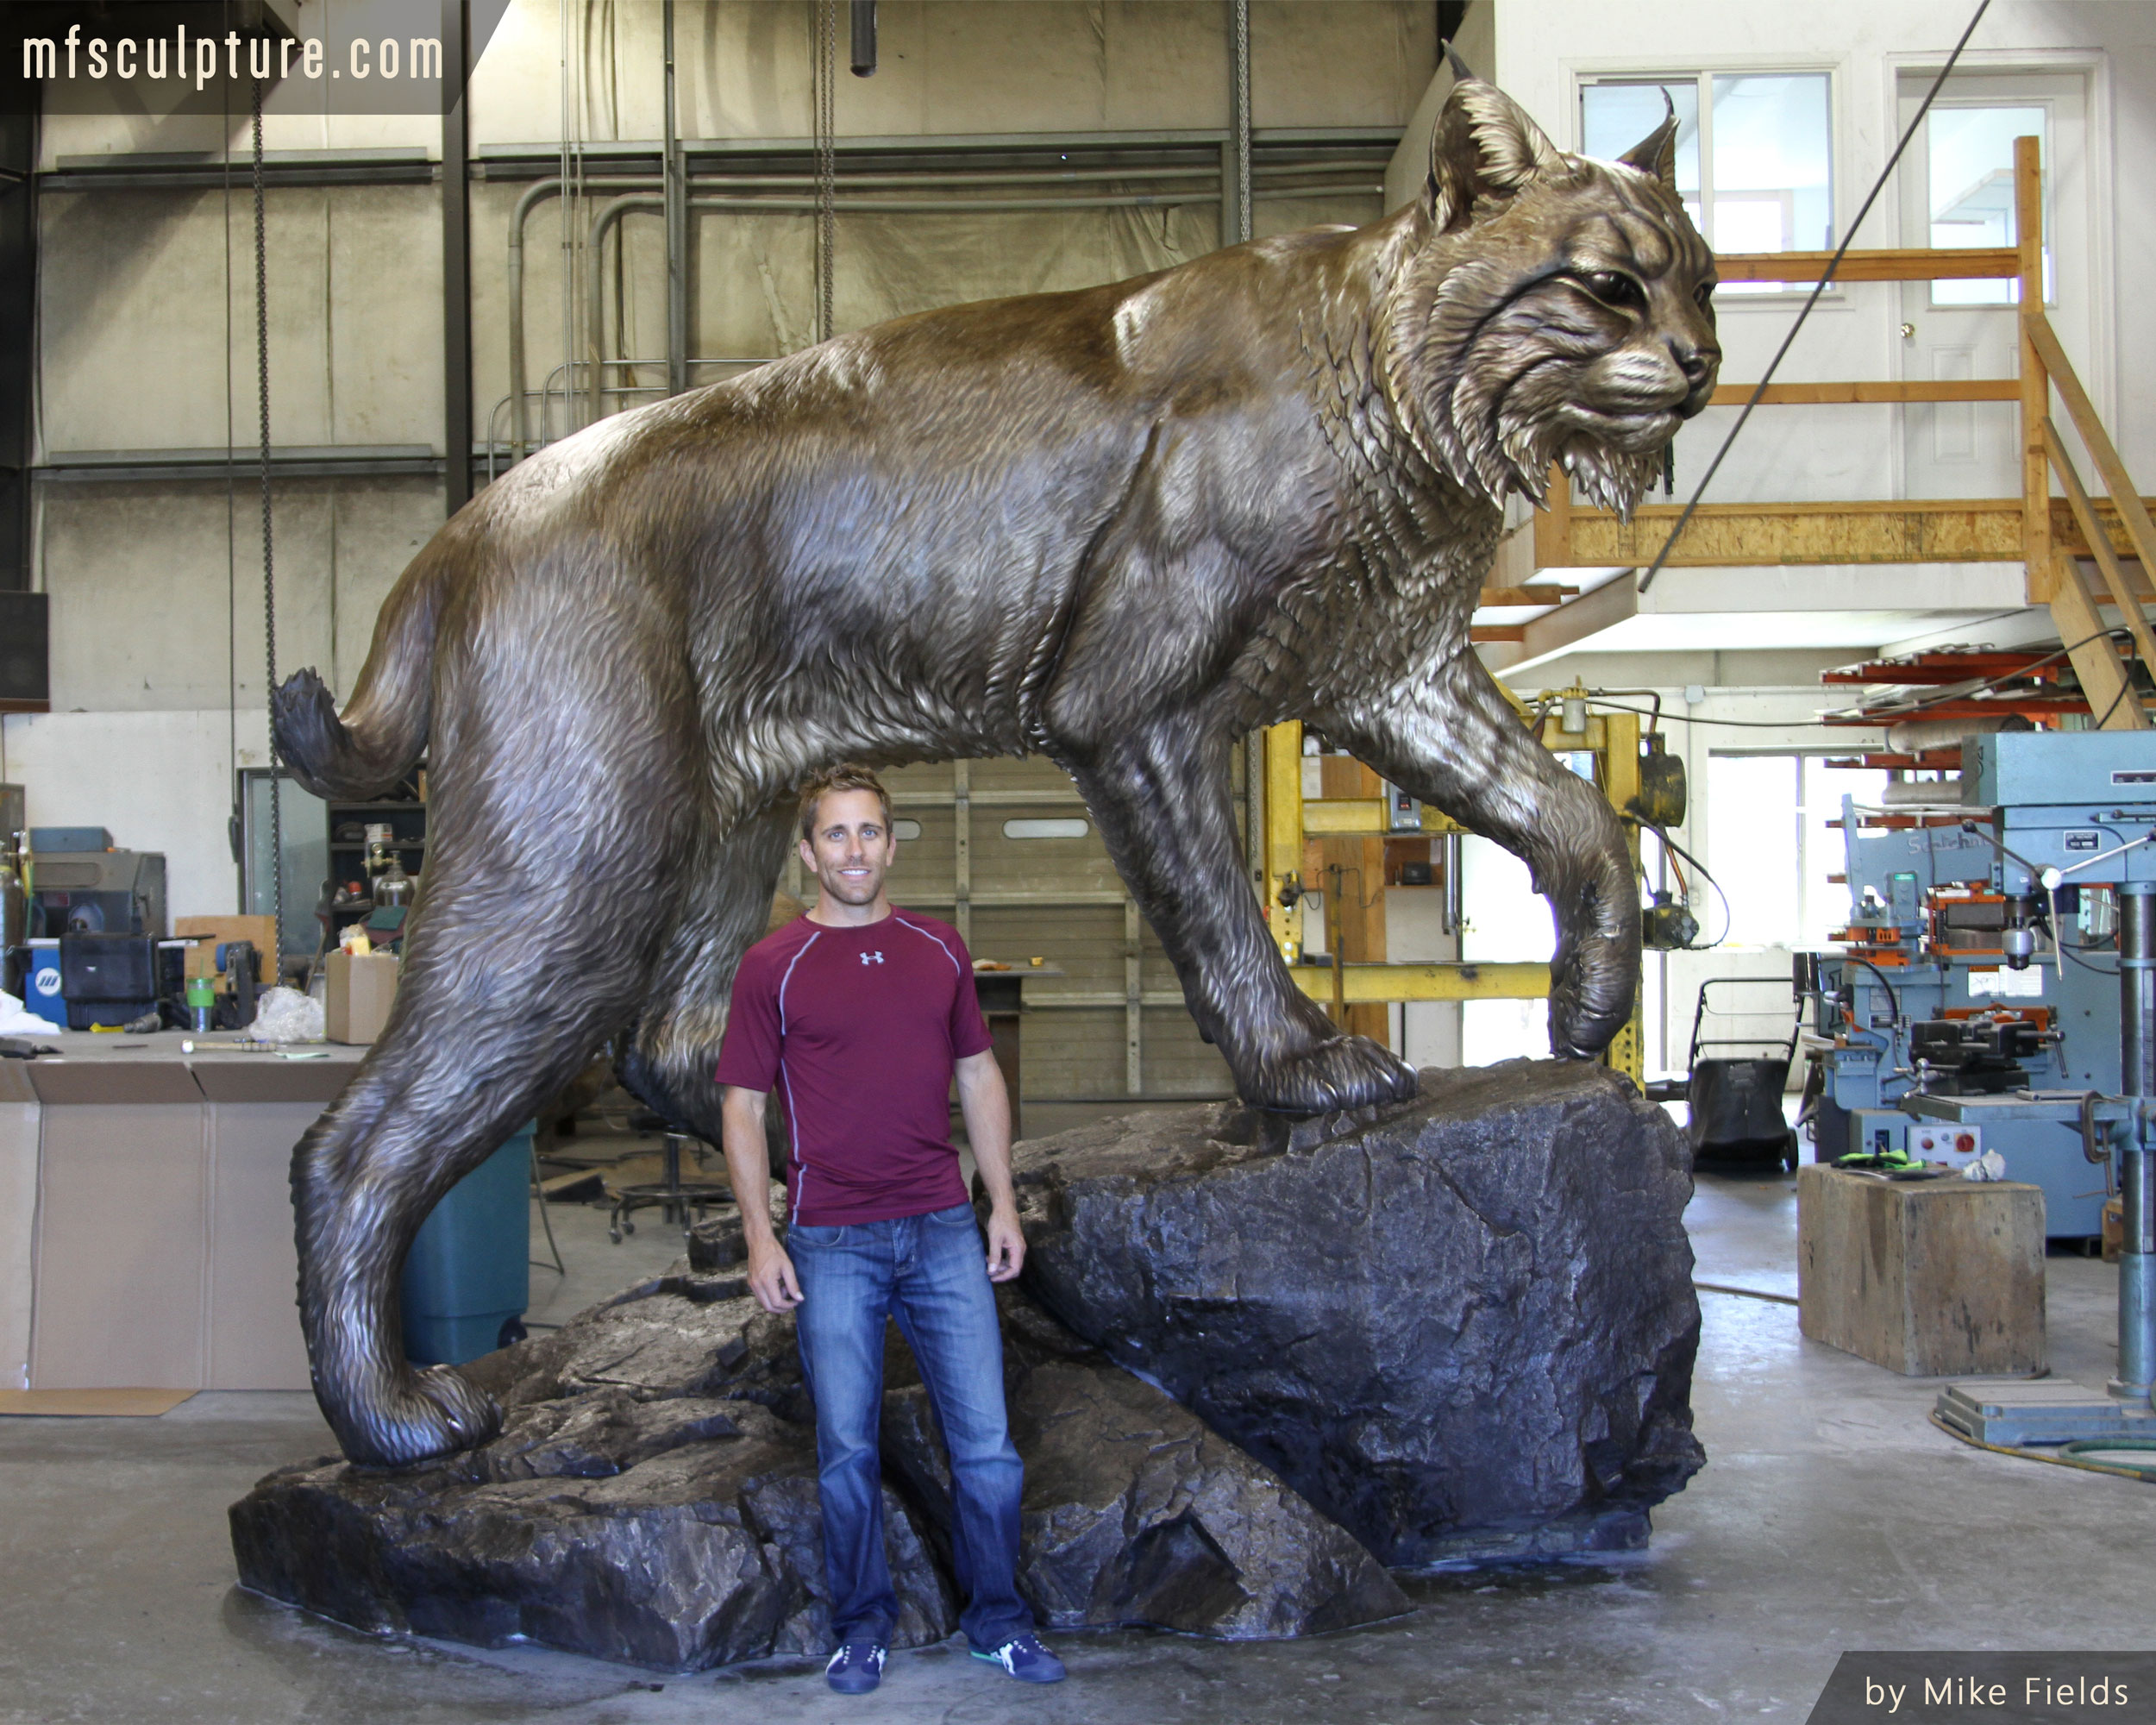 Wildcat-Sculpture-University-Monument-Mascot-Mike-Fields